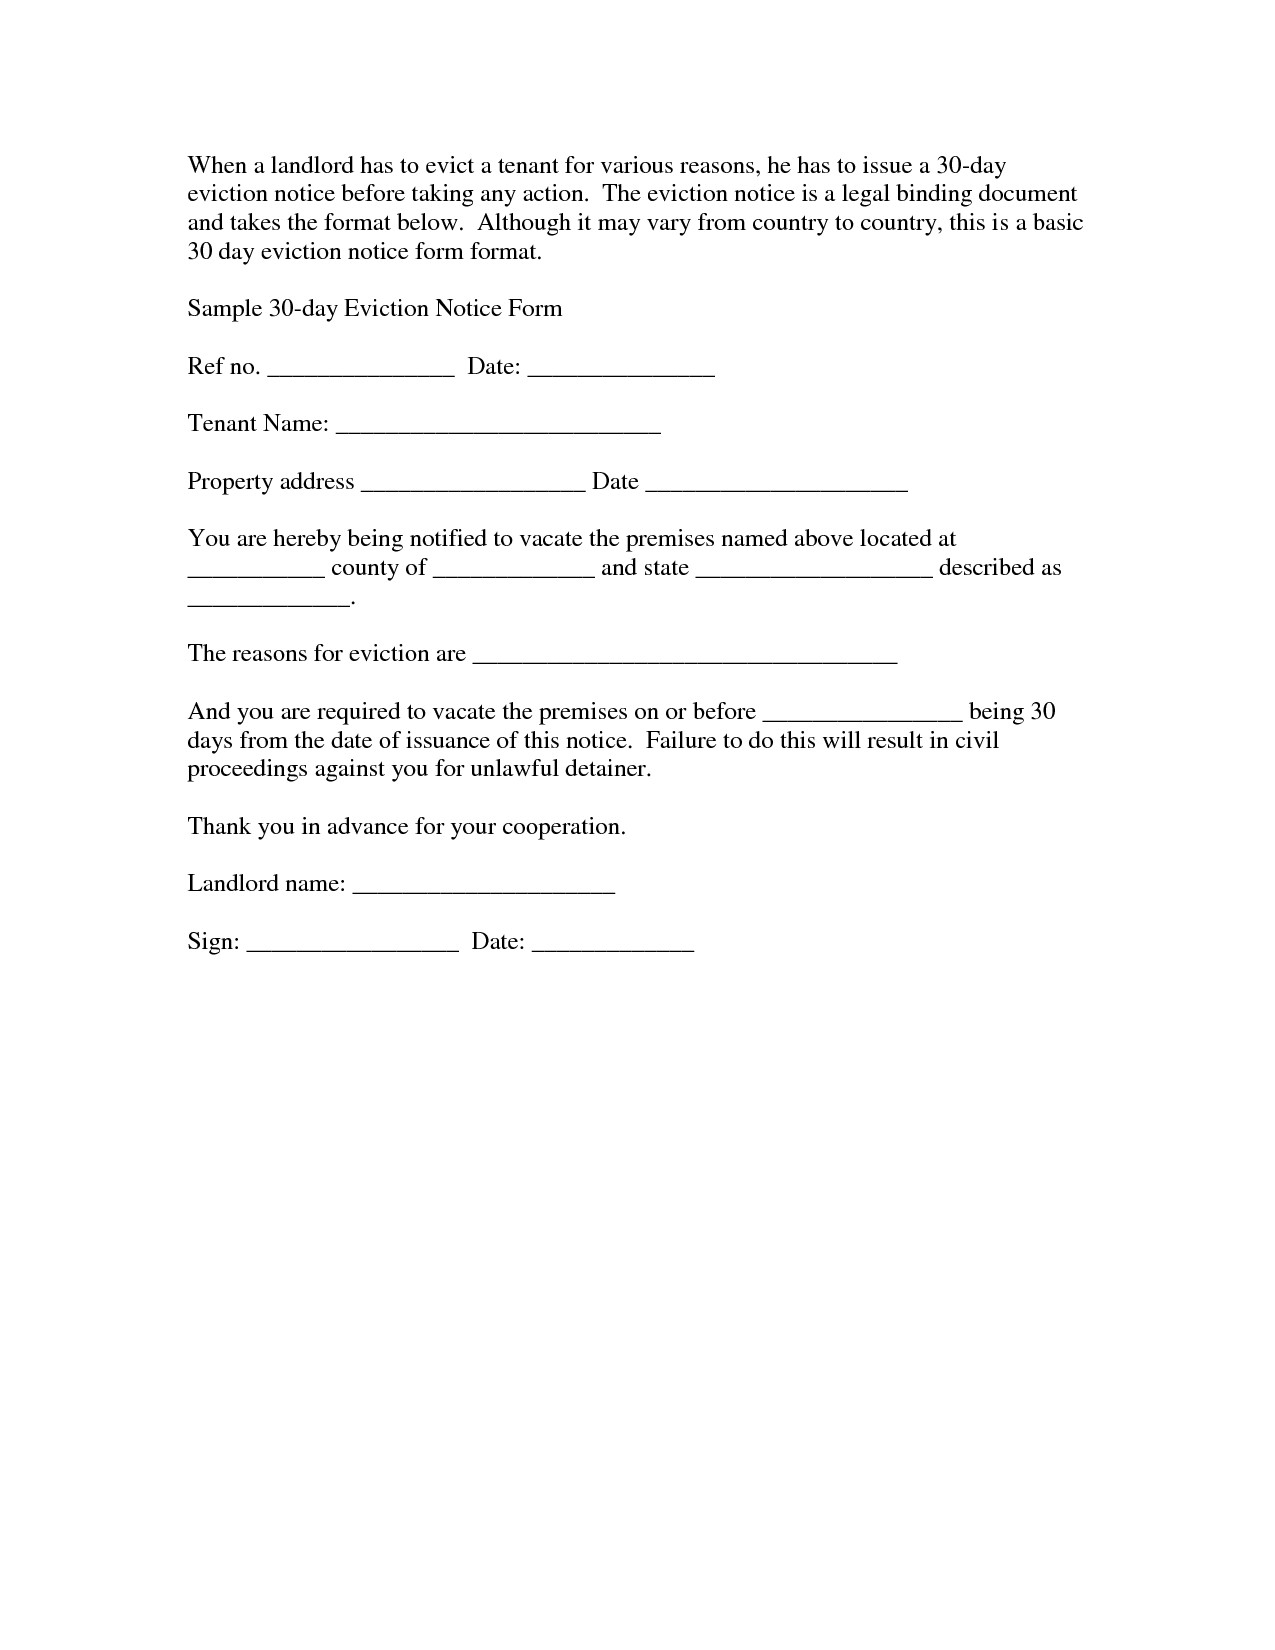 Eviction Warning Letter Template - Eviction Notices Fresh Equipment Purchase Agreement